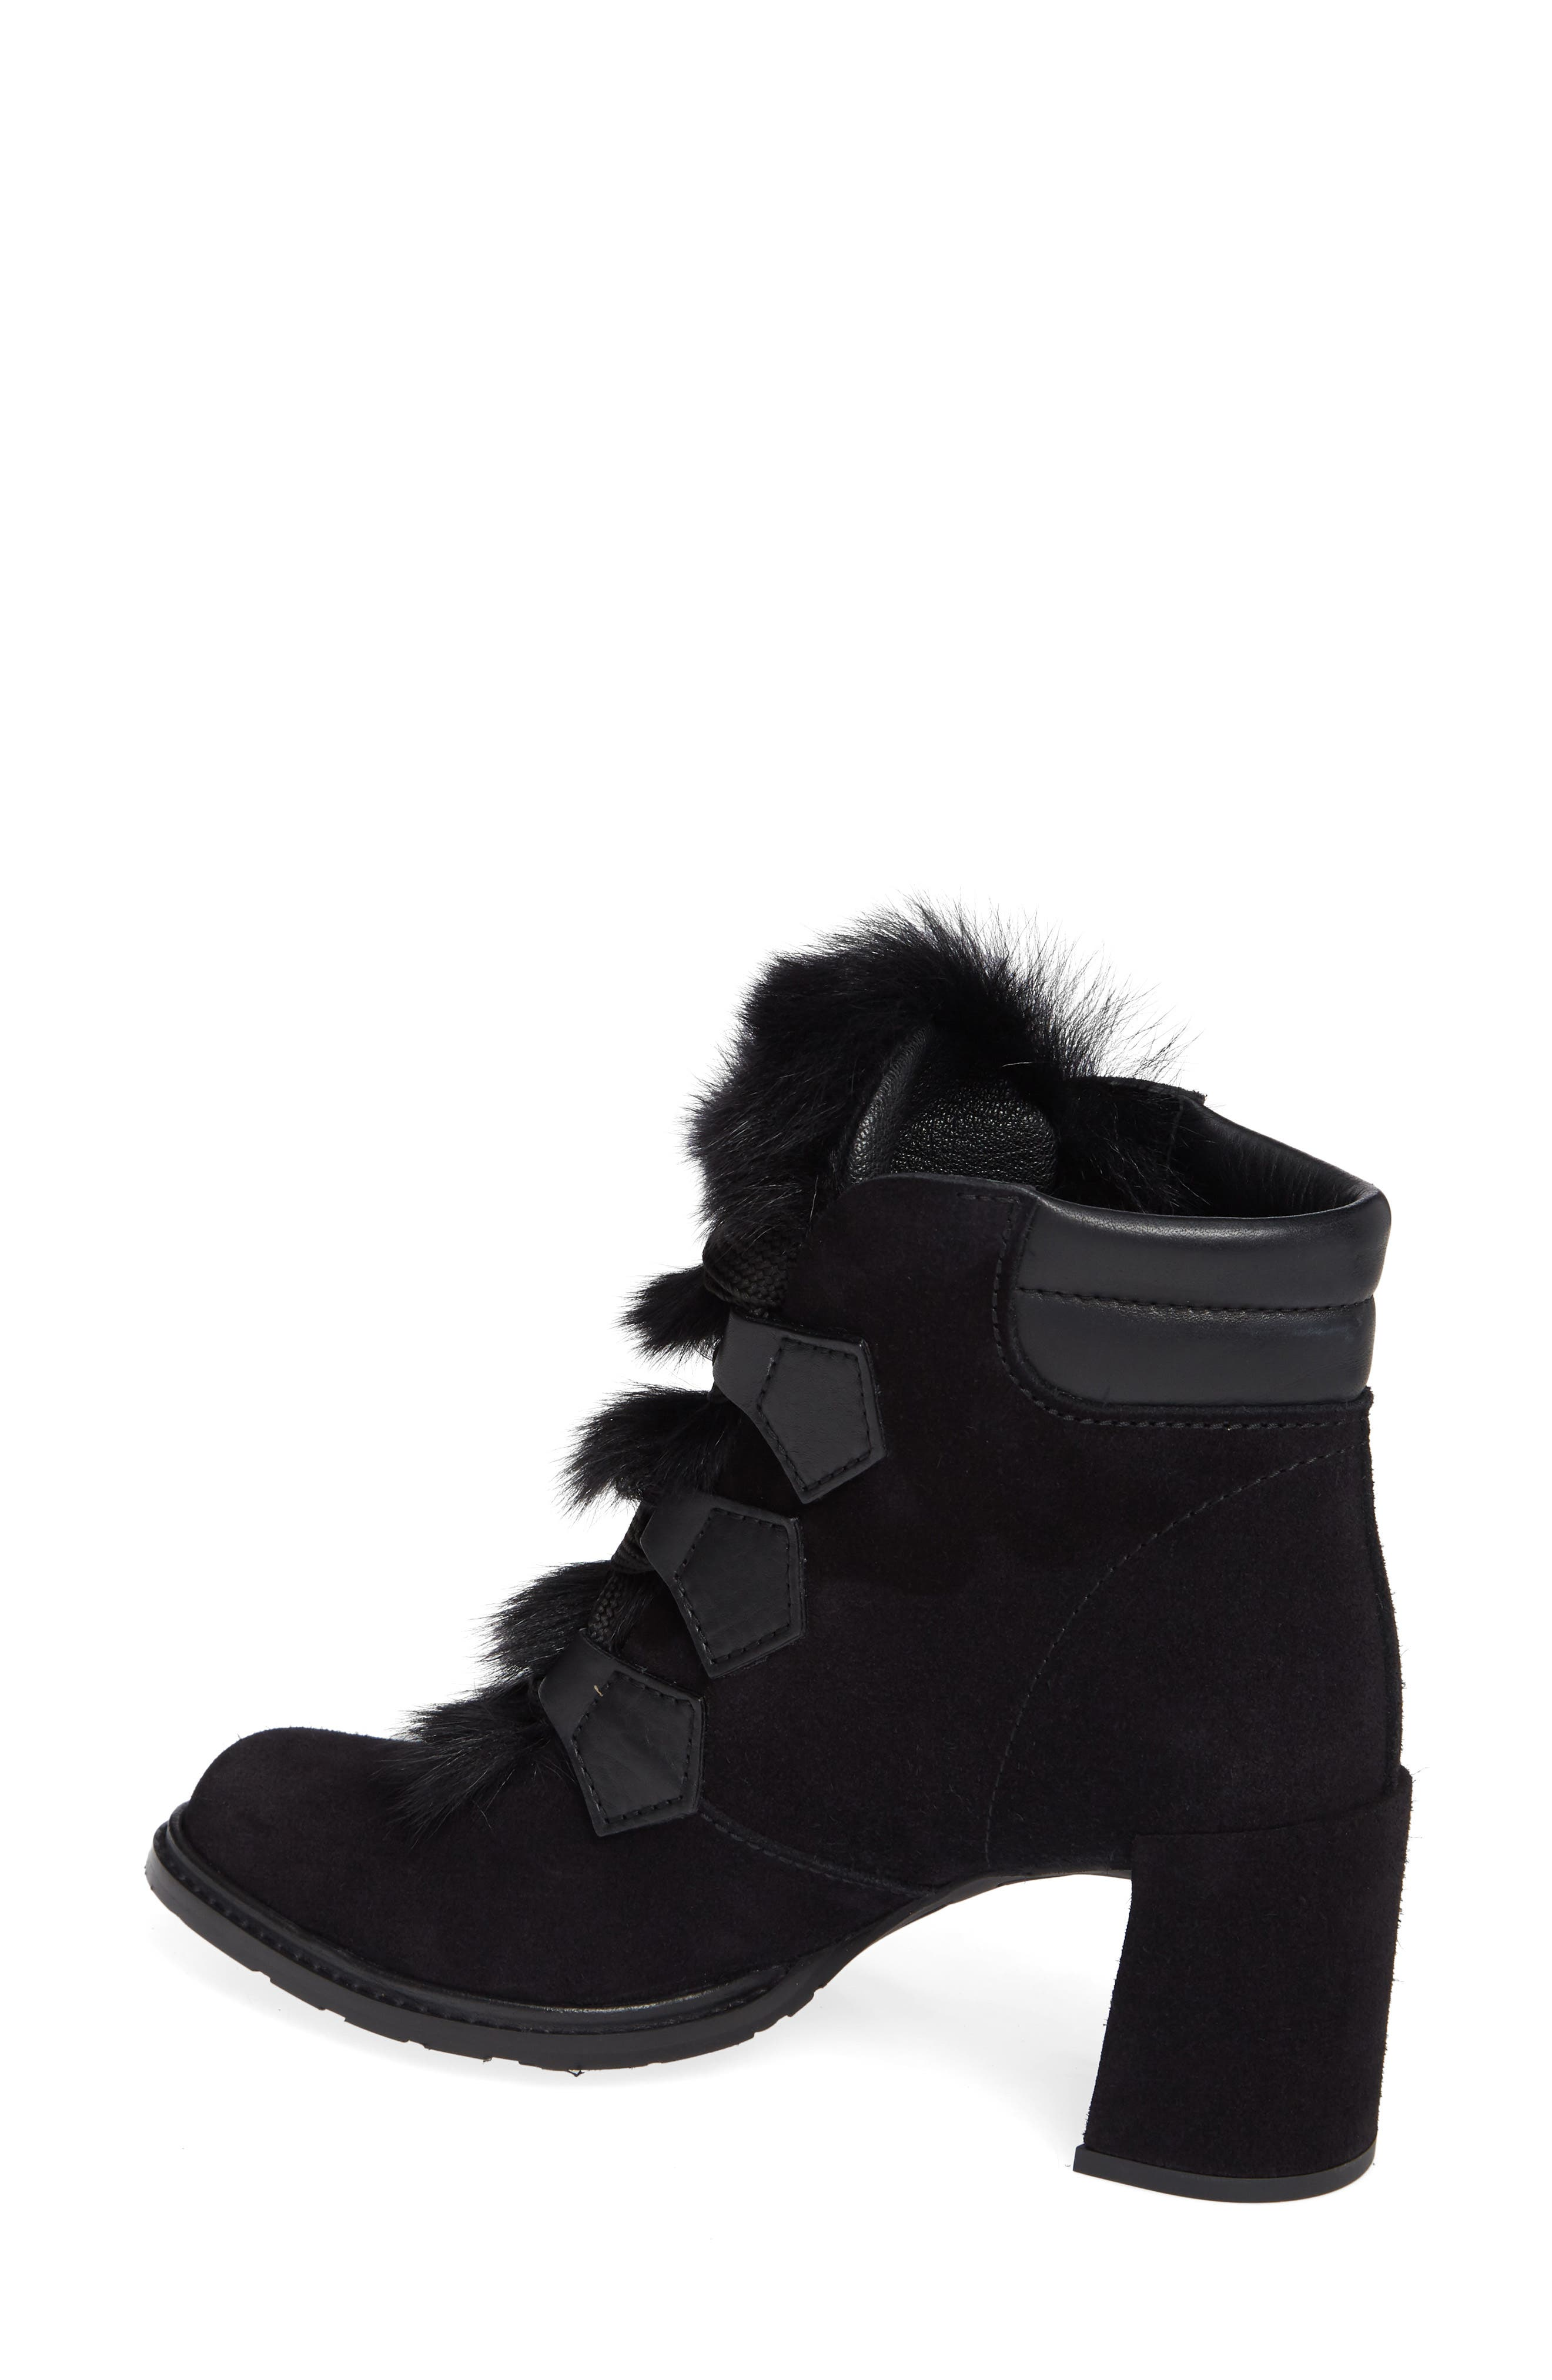 Wilmette Bootie with Genuine Shearling Trim,                             Alternate thumbnail 2, color,                             BLACK CHURRA